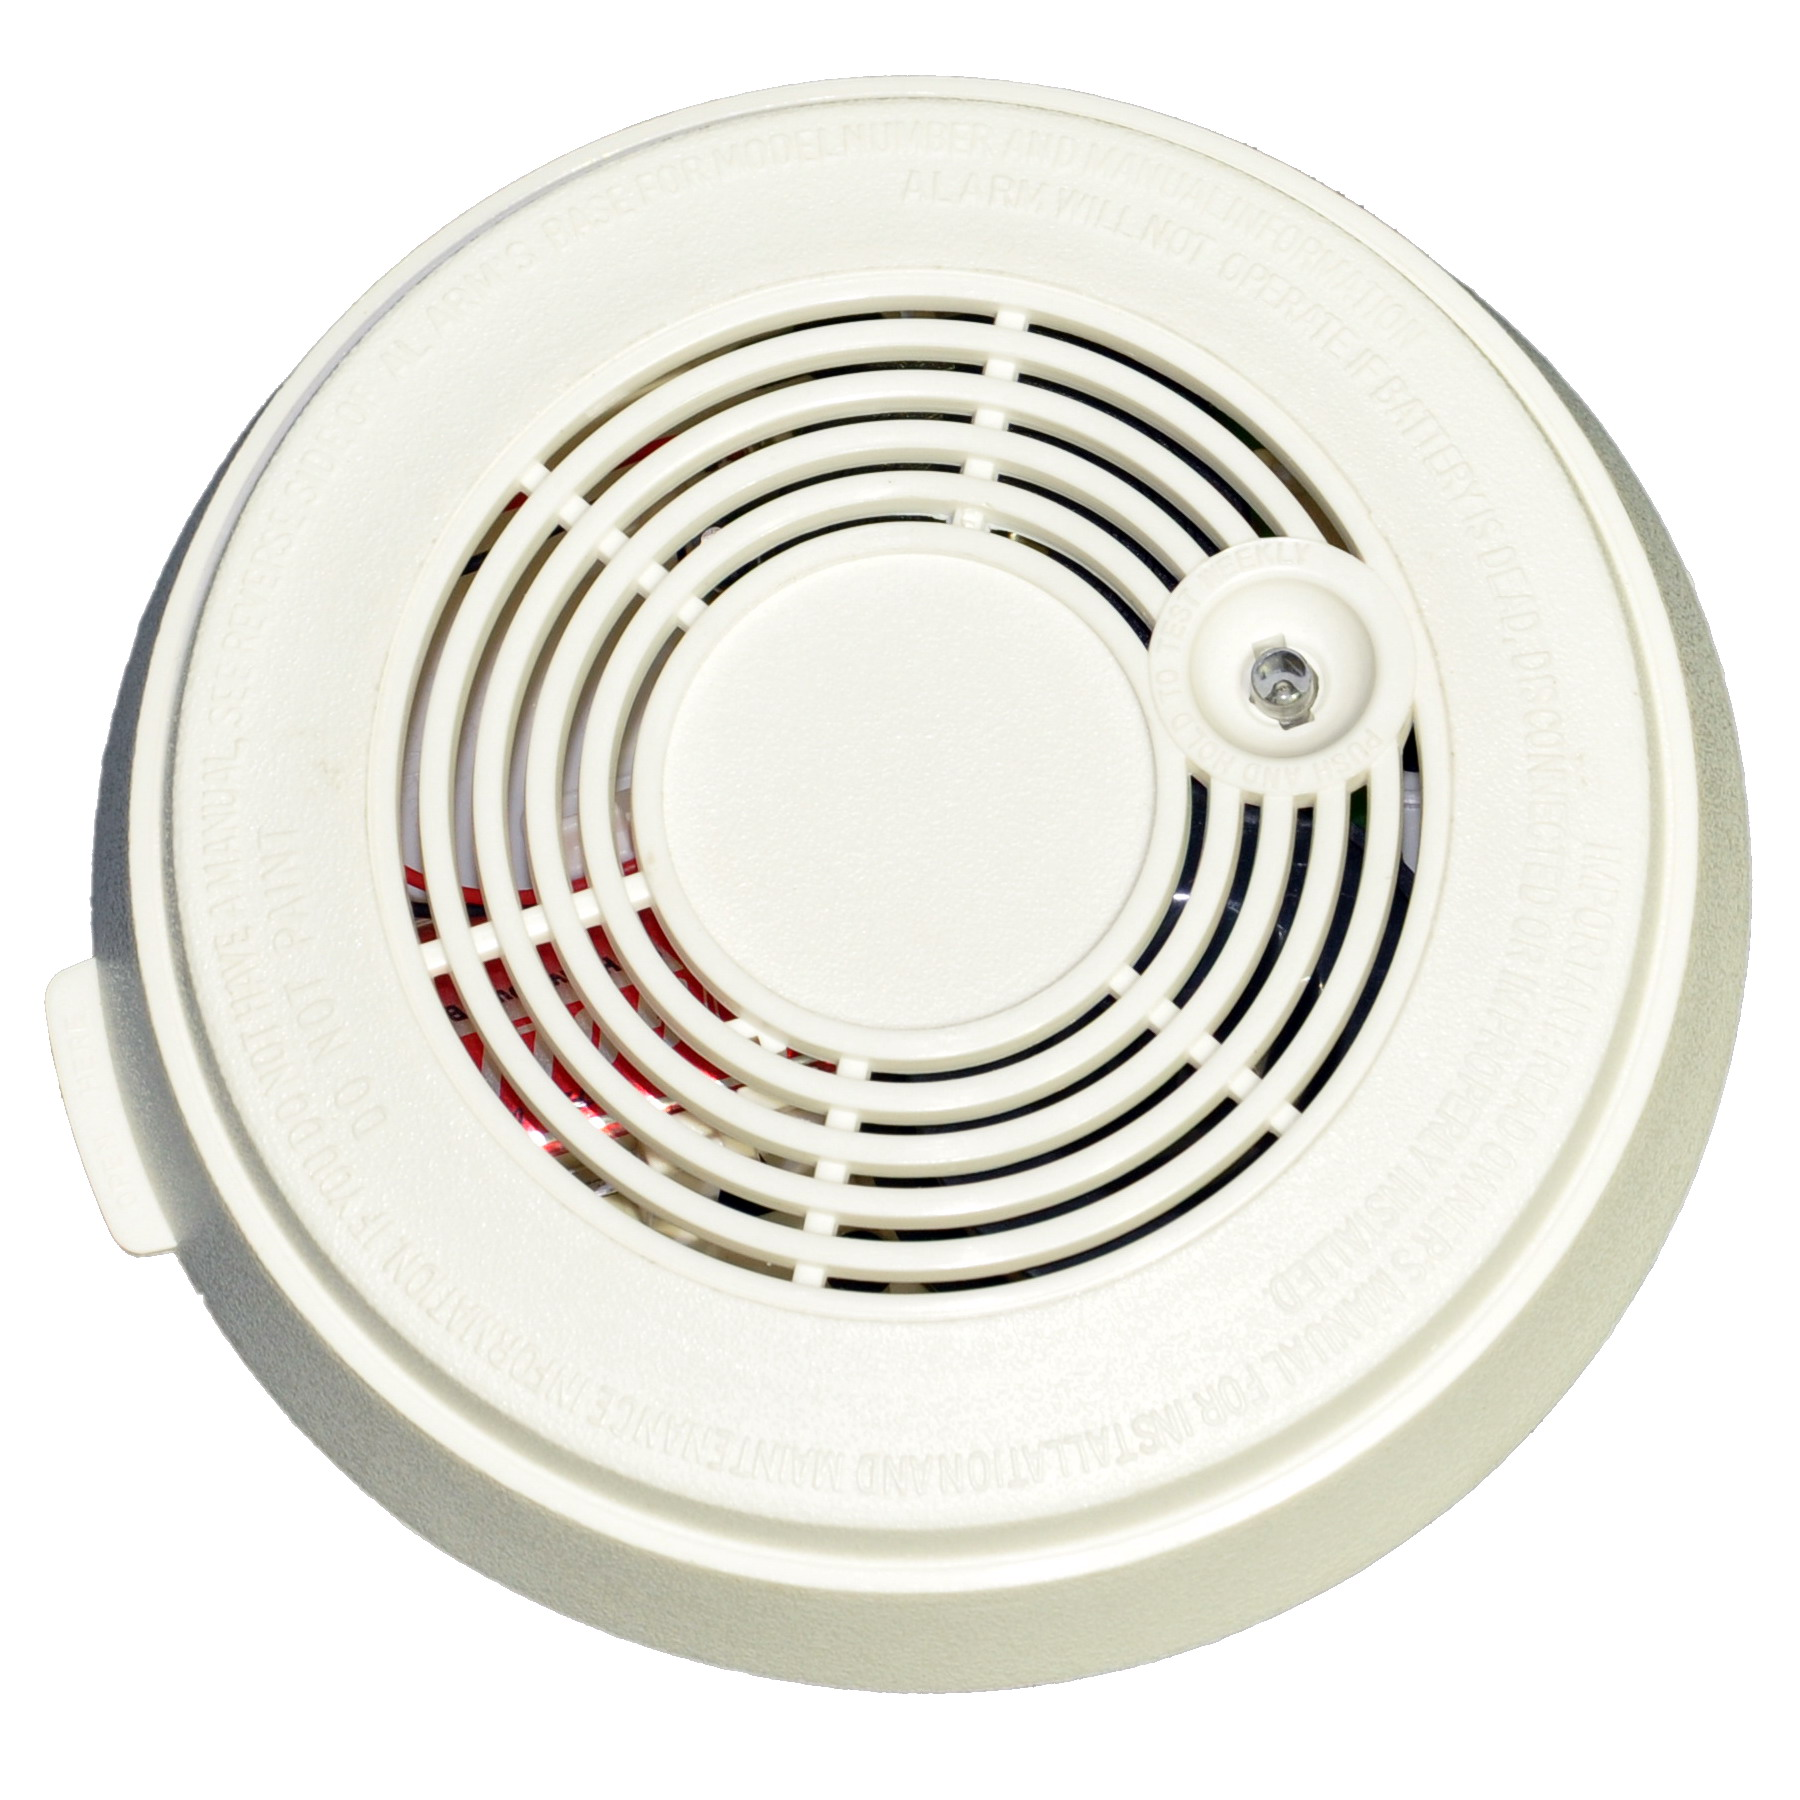 Smoke Alarm Photoelectric Sensor Early Fire Detection